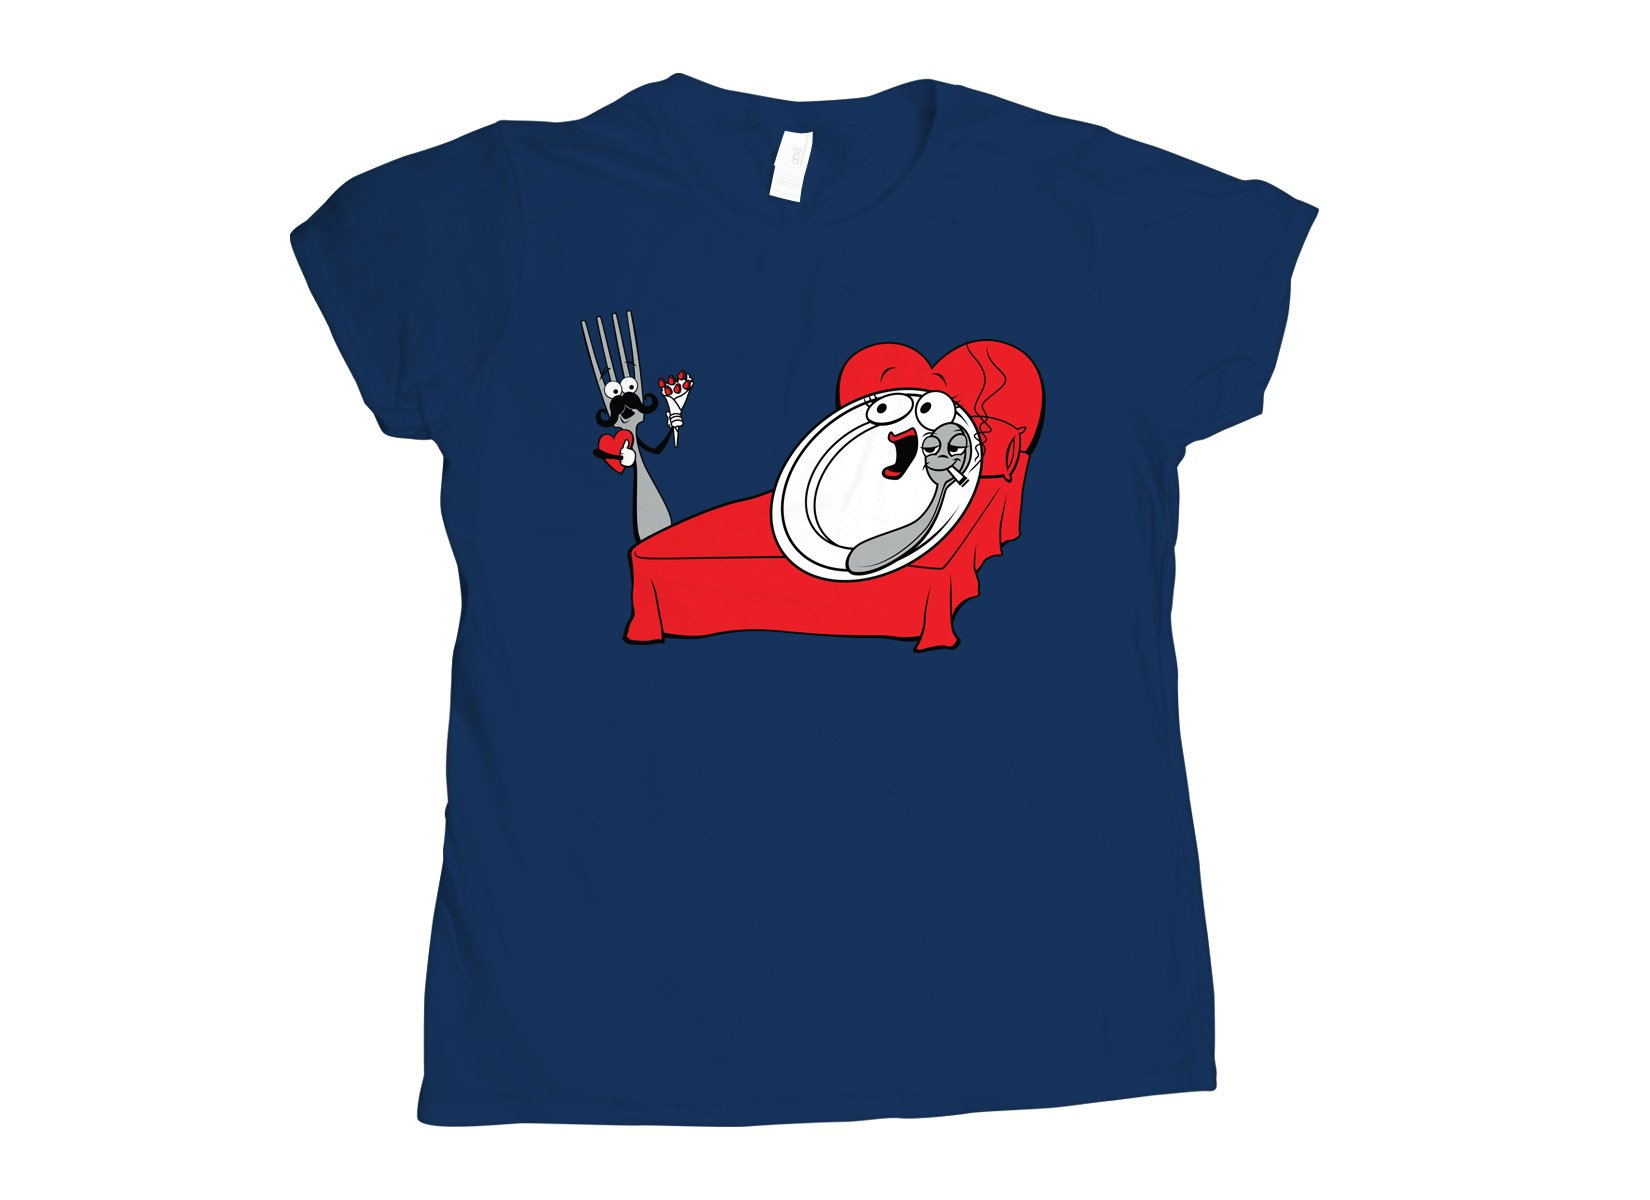 The Dish Ran Away on Womens T-Shirt